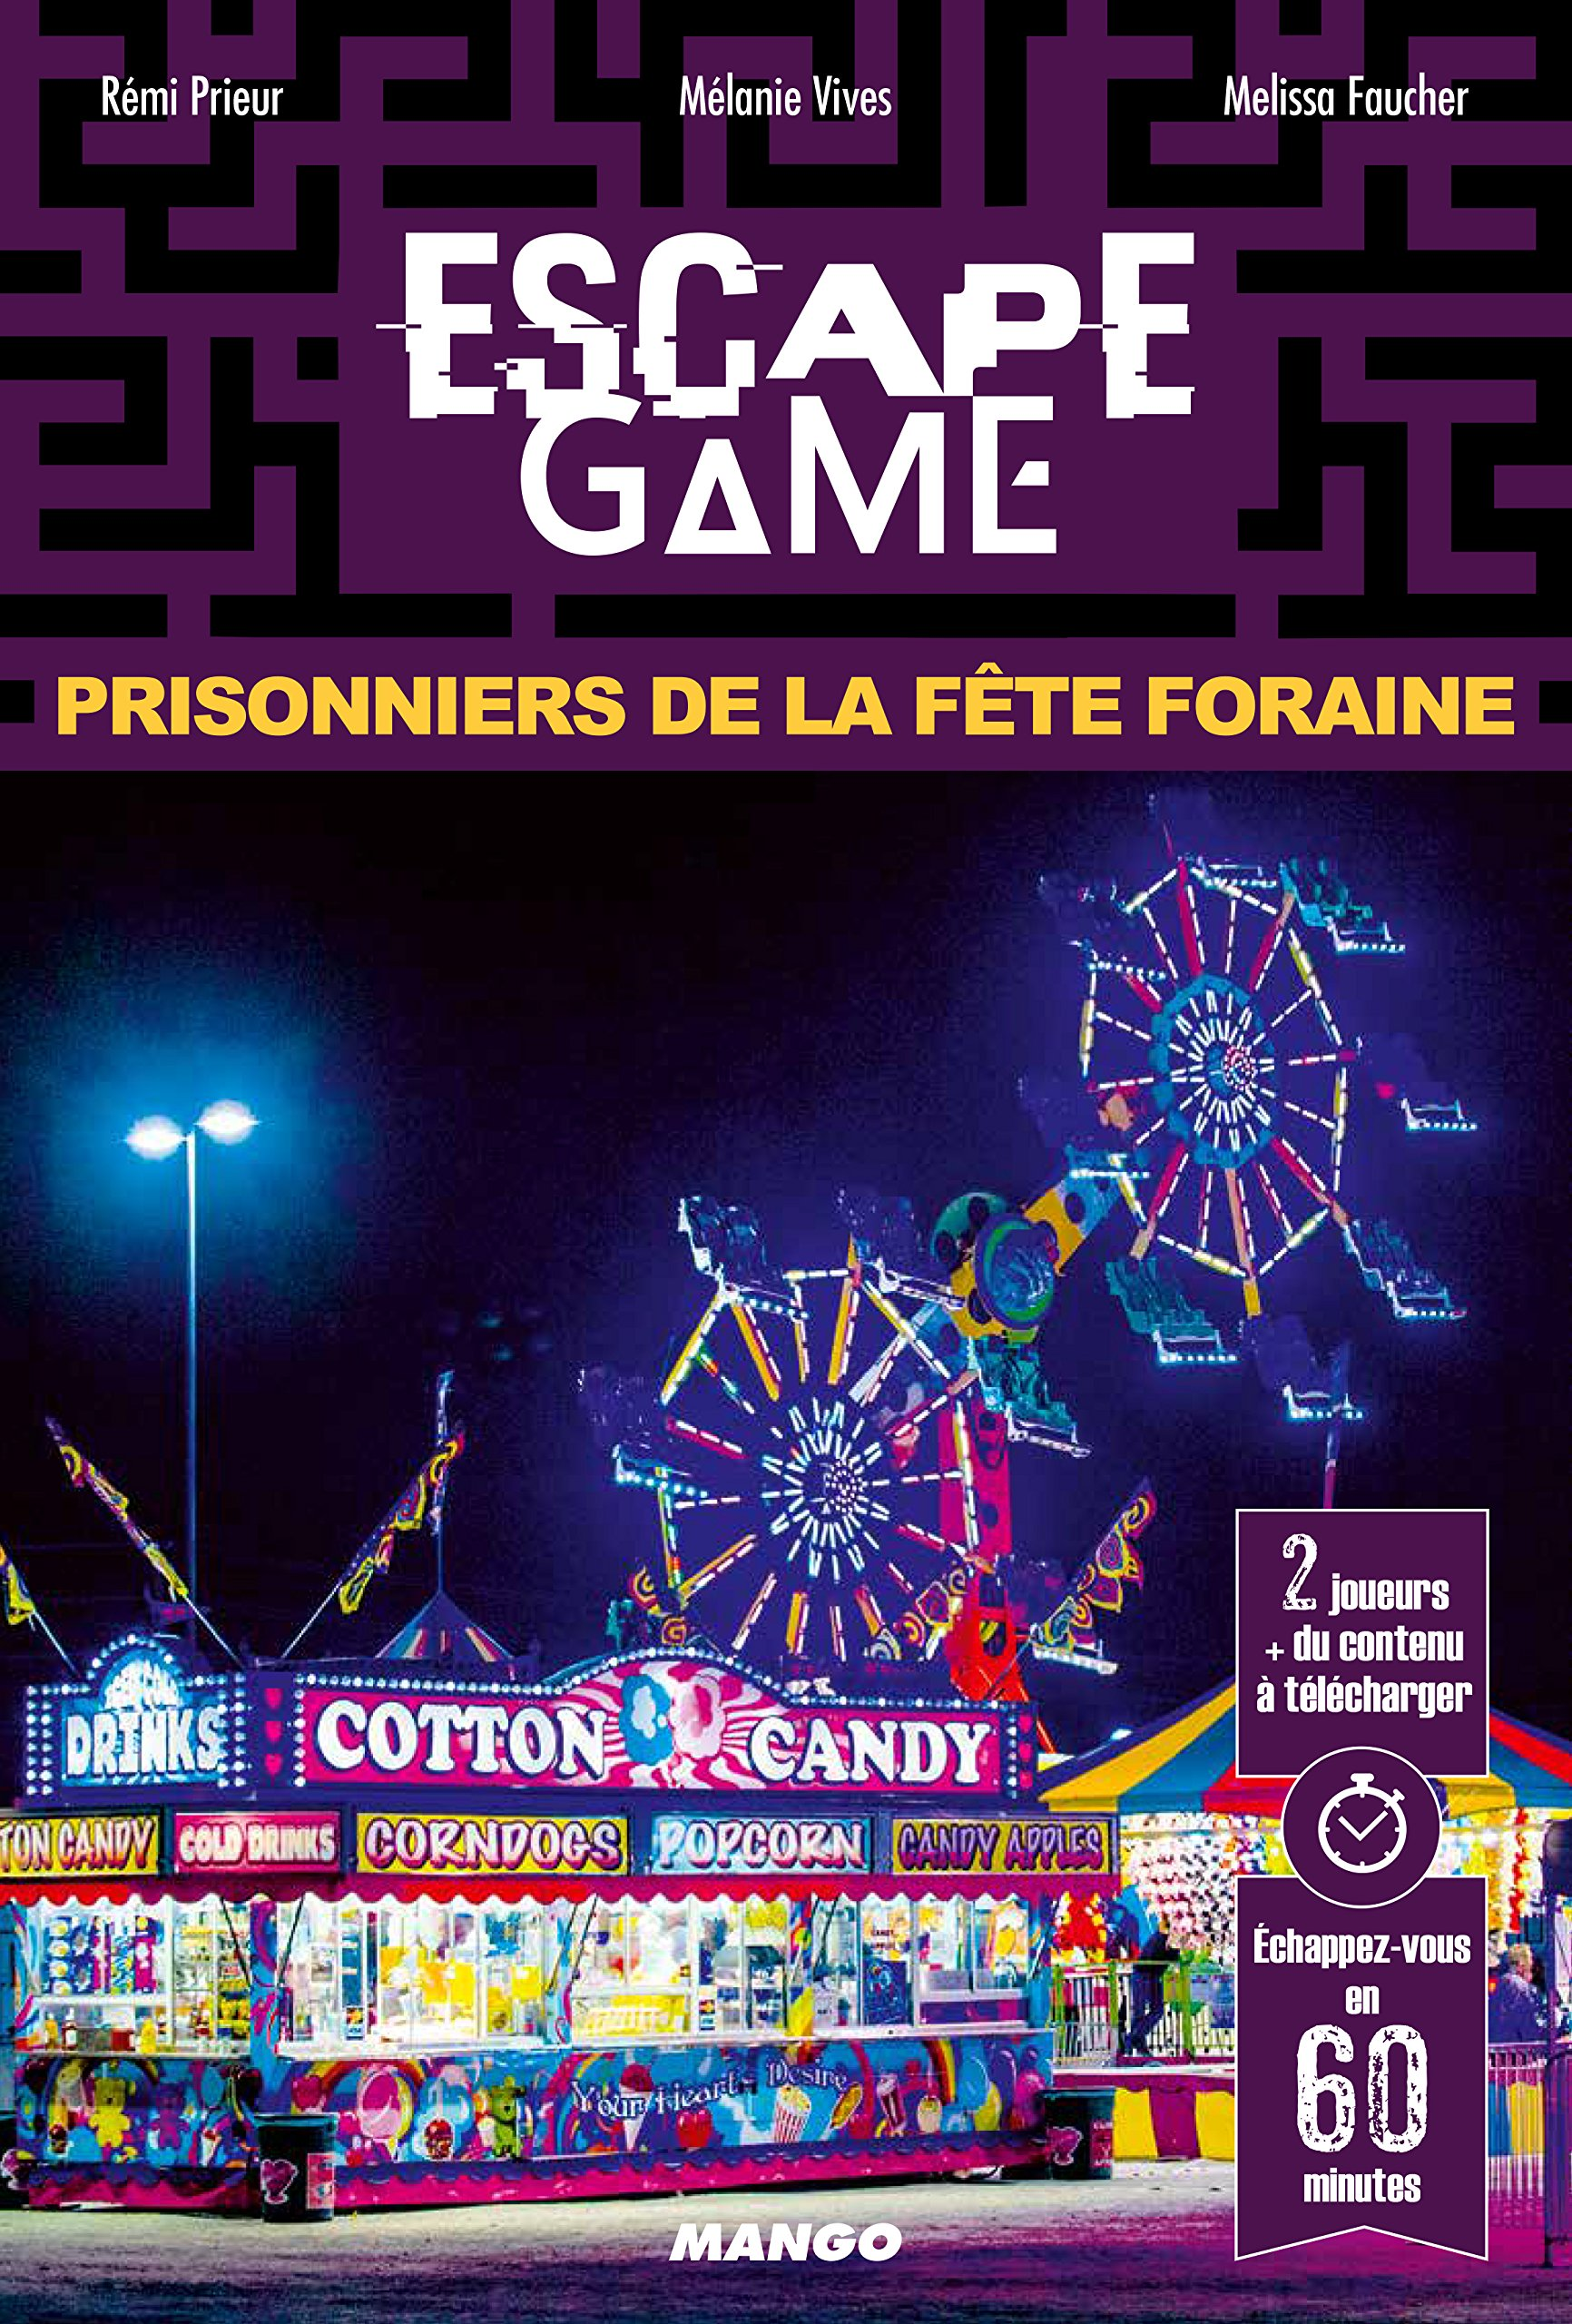 escape-game-prisonniers-de-la-fete-foraine-20240-300-300